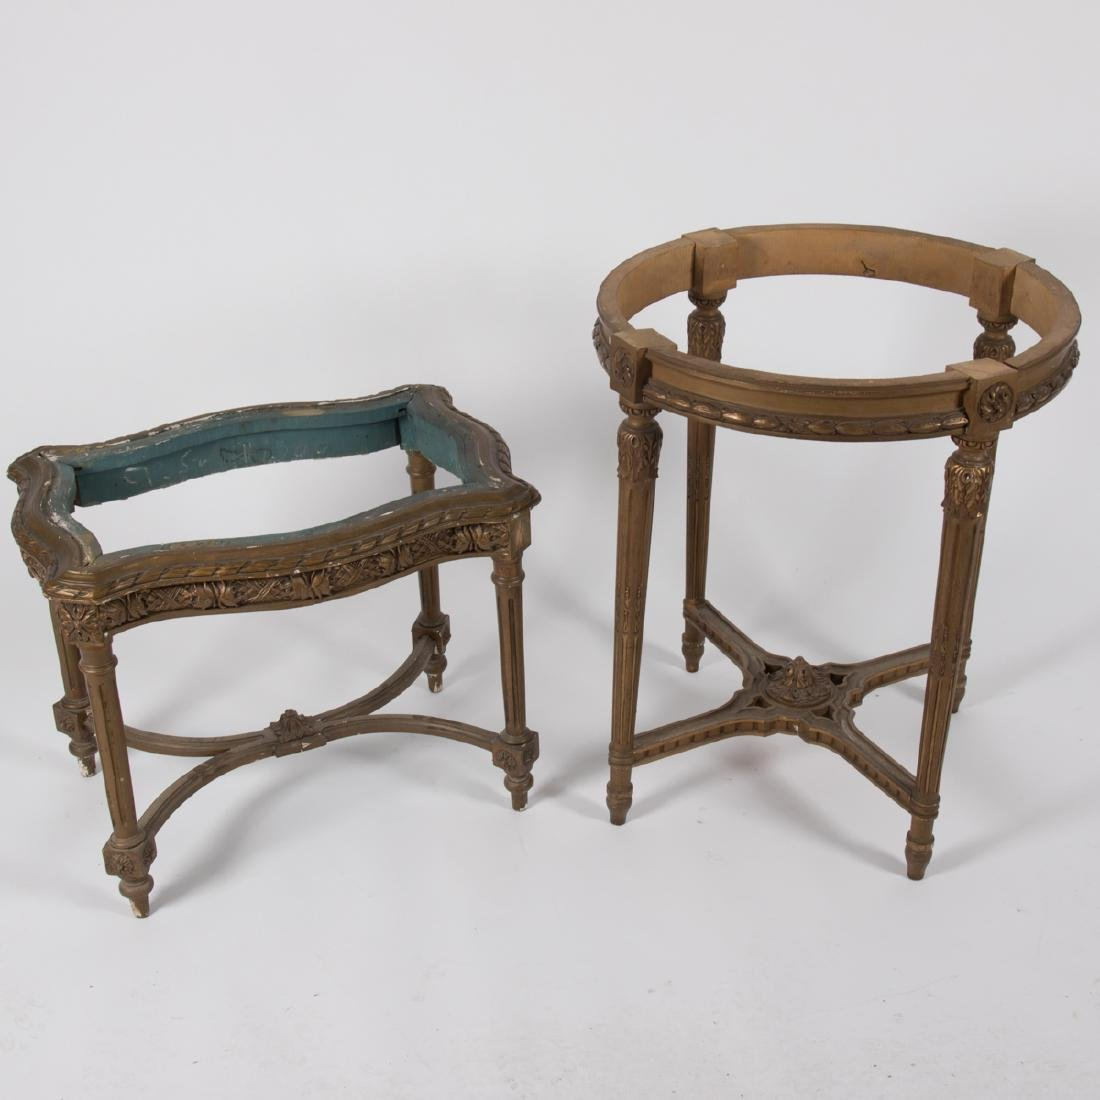 Two Louis XVI Style Giltwood Side Tables, 20th Century.